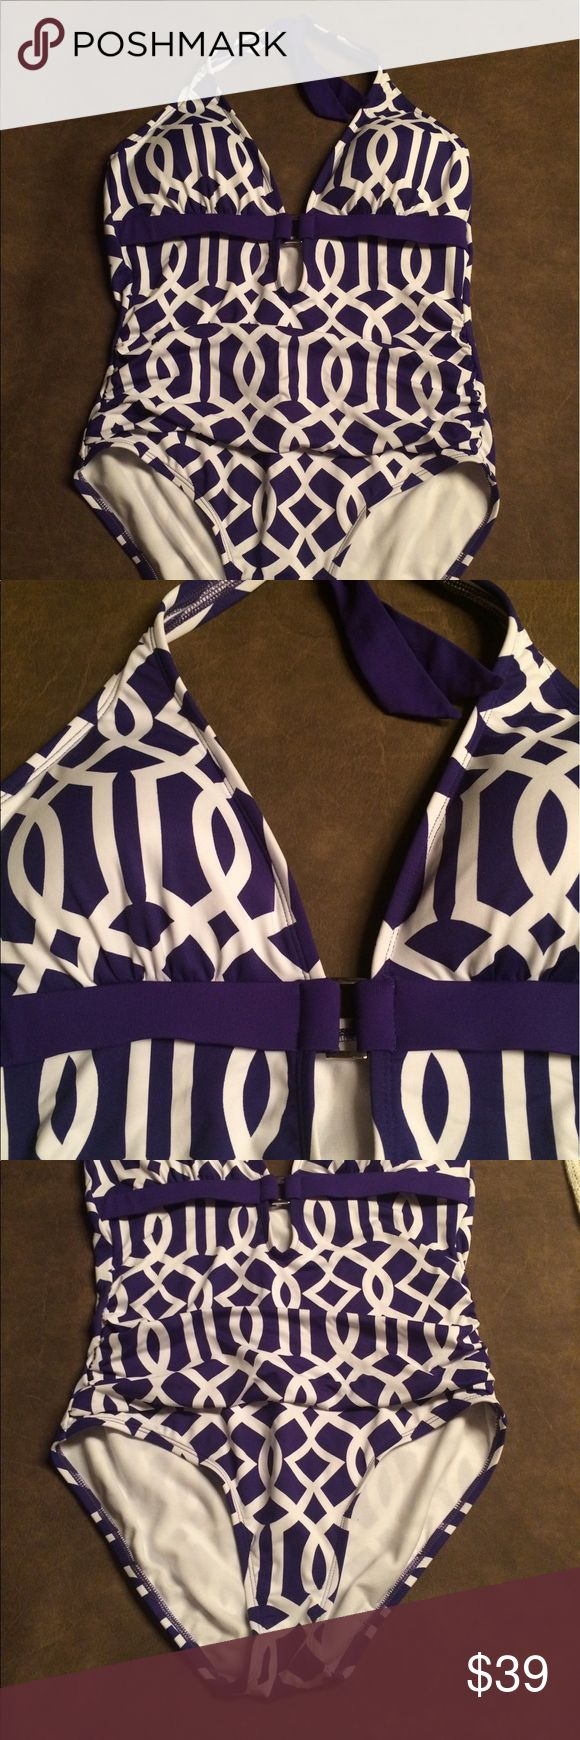 🏖Liz Claiborne swimsuit in Purple and White🏖 Beautiful and flattering suit. Never worn out - just tried on. Super cute. Lightly padded top. Halter cut top. Liz Claiborne Swim One Pieces